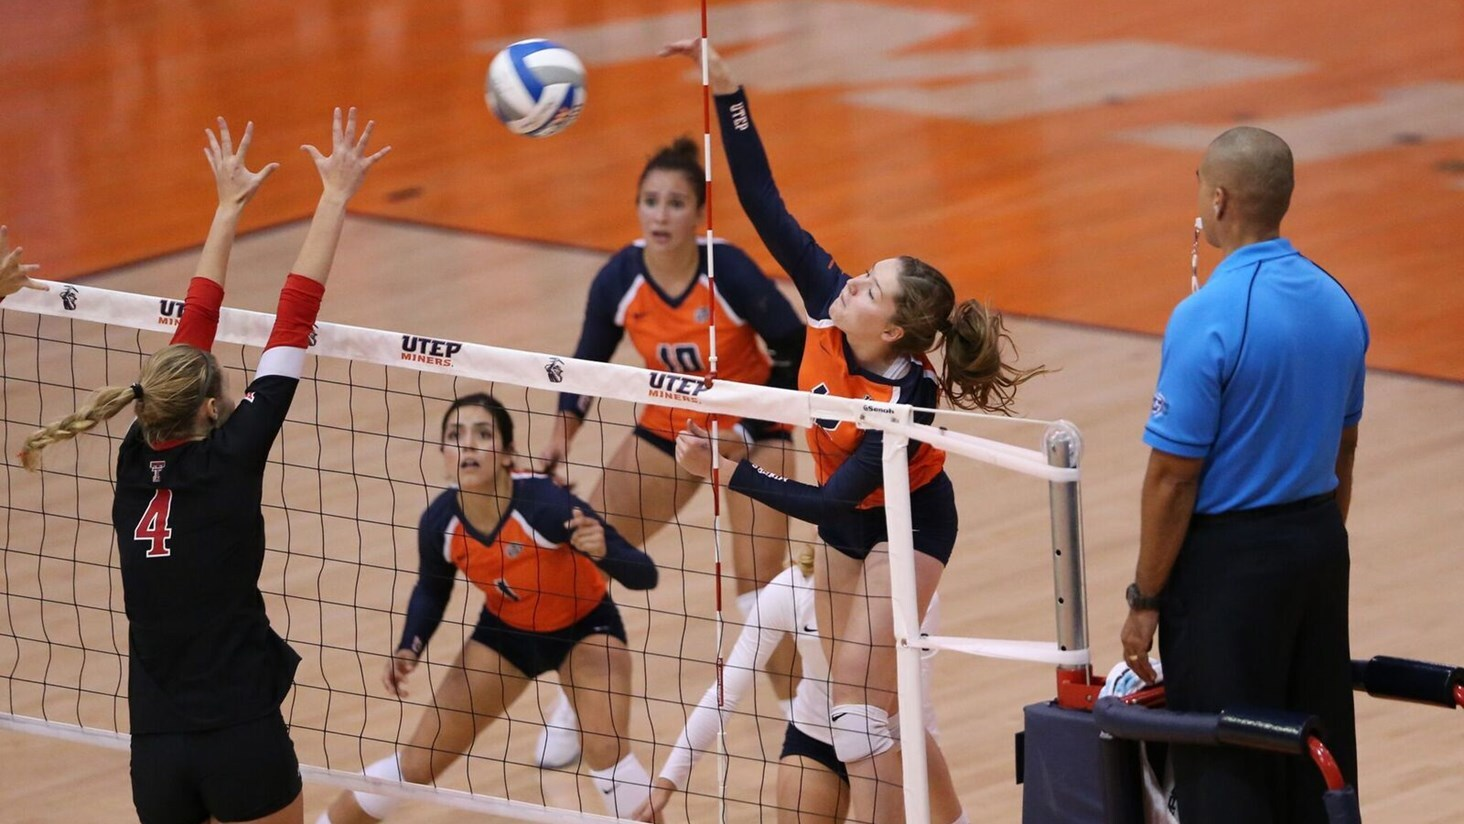 utep-volleyball